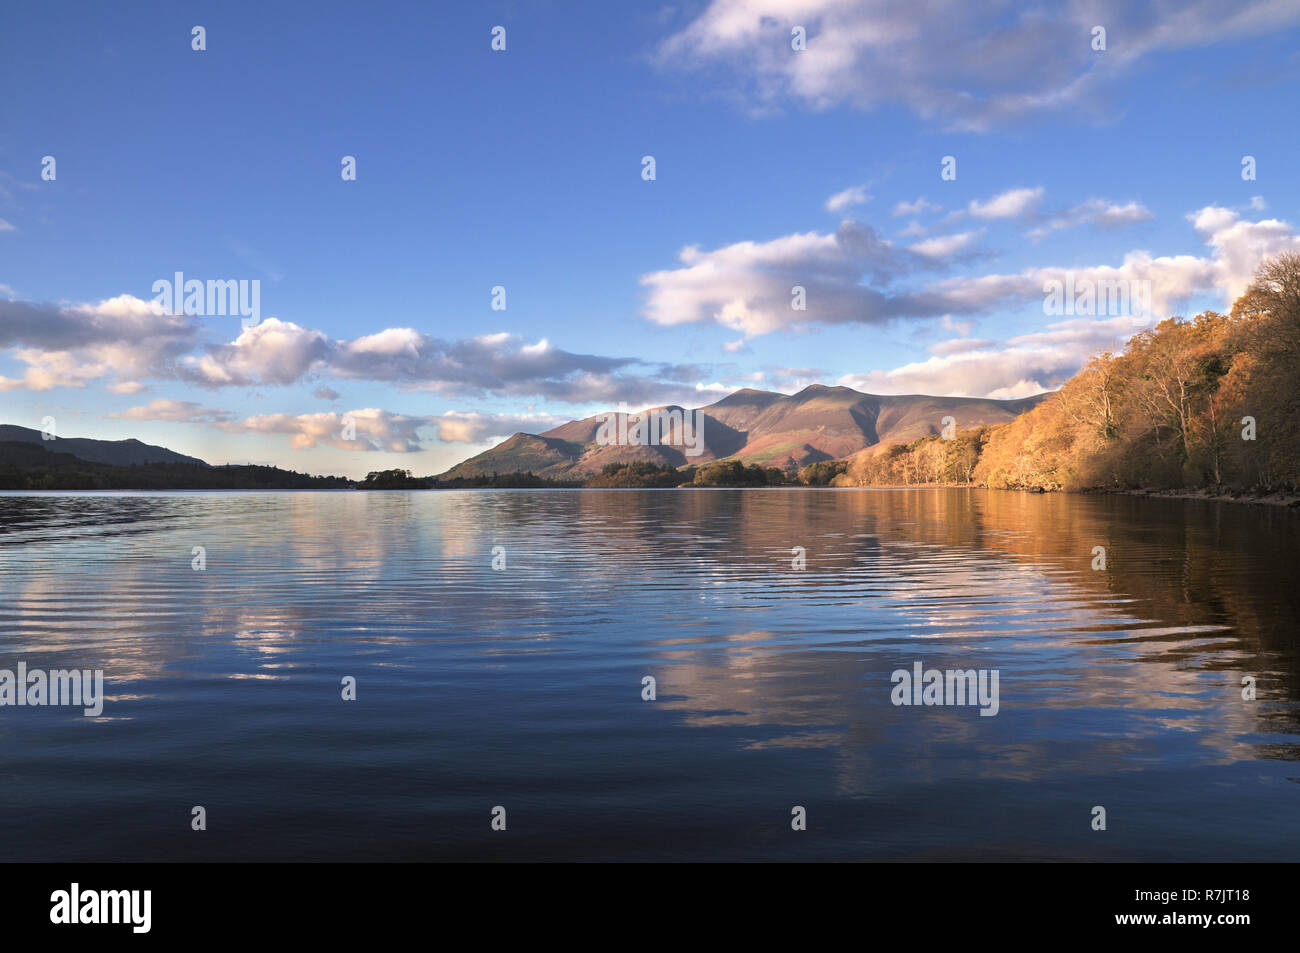 A view of the Skiddaw mountain range from Derwentwater, Lake District, Cumbria, England, UK - Stock Image